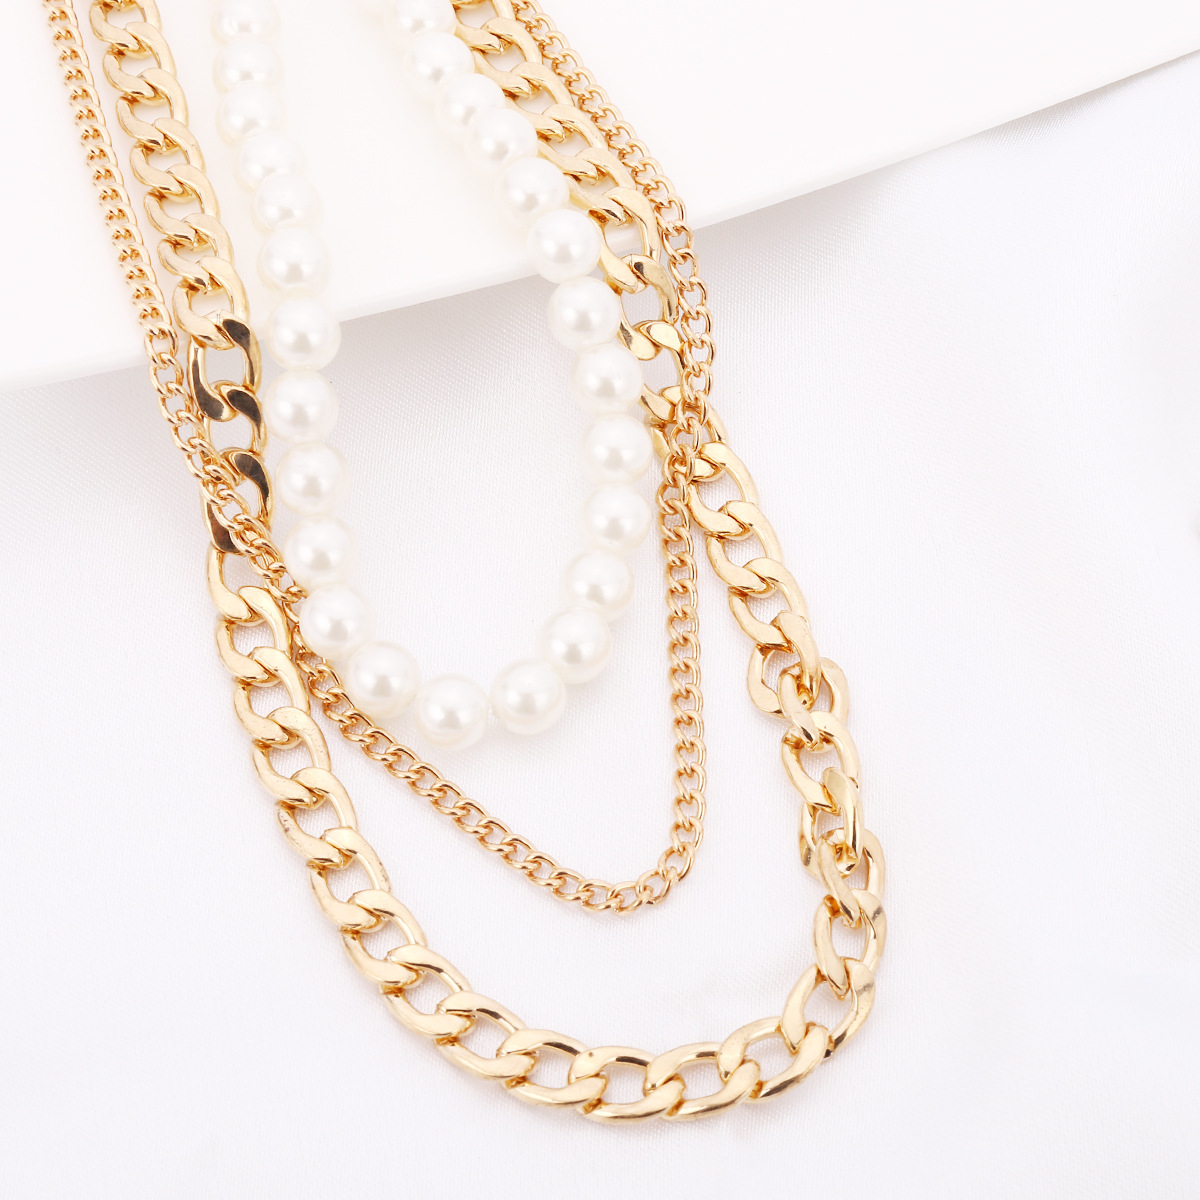 Fashion Alloy plating necklace Geometric (Gold -1630)NHXR1661-Gold -1630